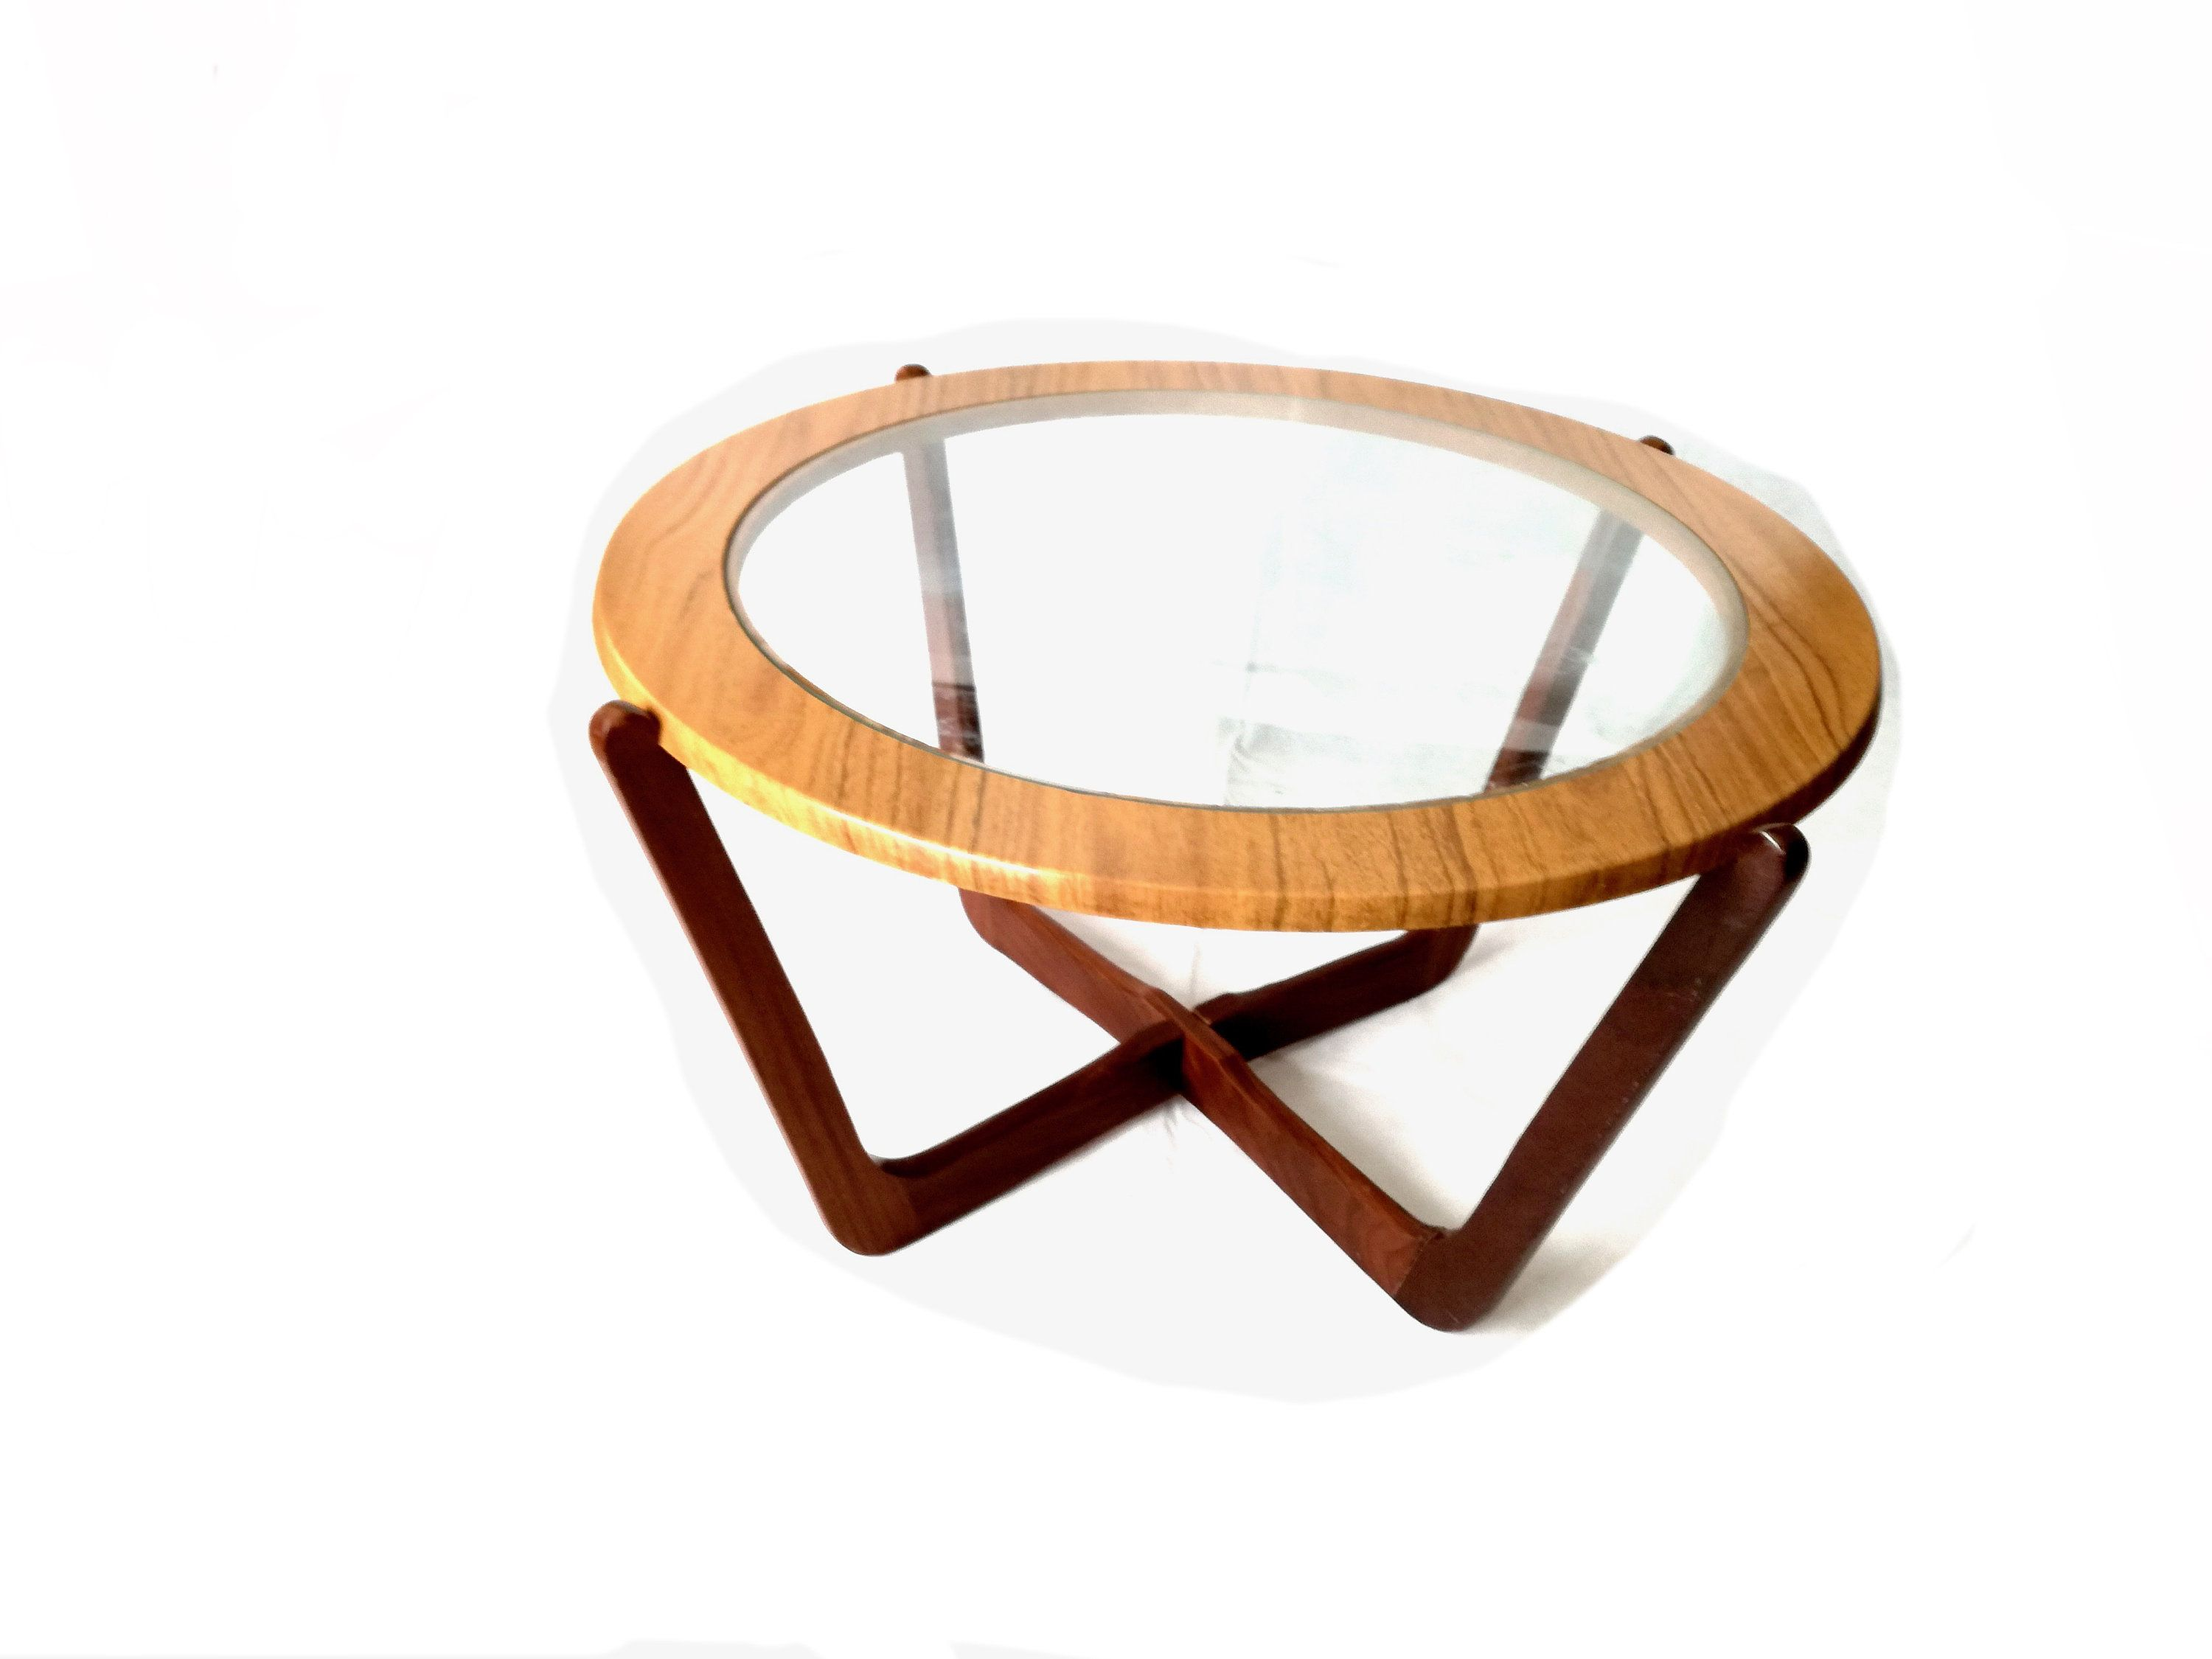 Retro Coffee Table Vintage Danish Teak 1950 S 1970 S Solid Teak Glass Table Round Teak Retro Coffee Tables Coffee Table Vintage Coffee Table Base